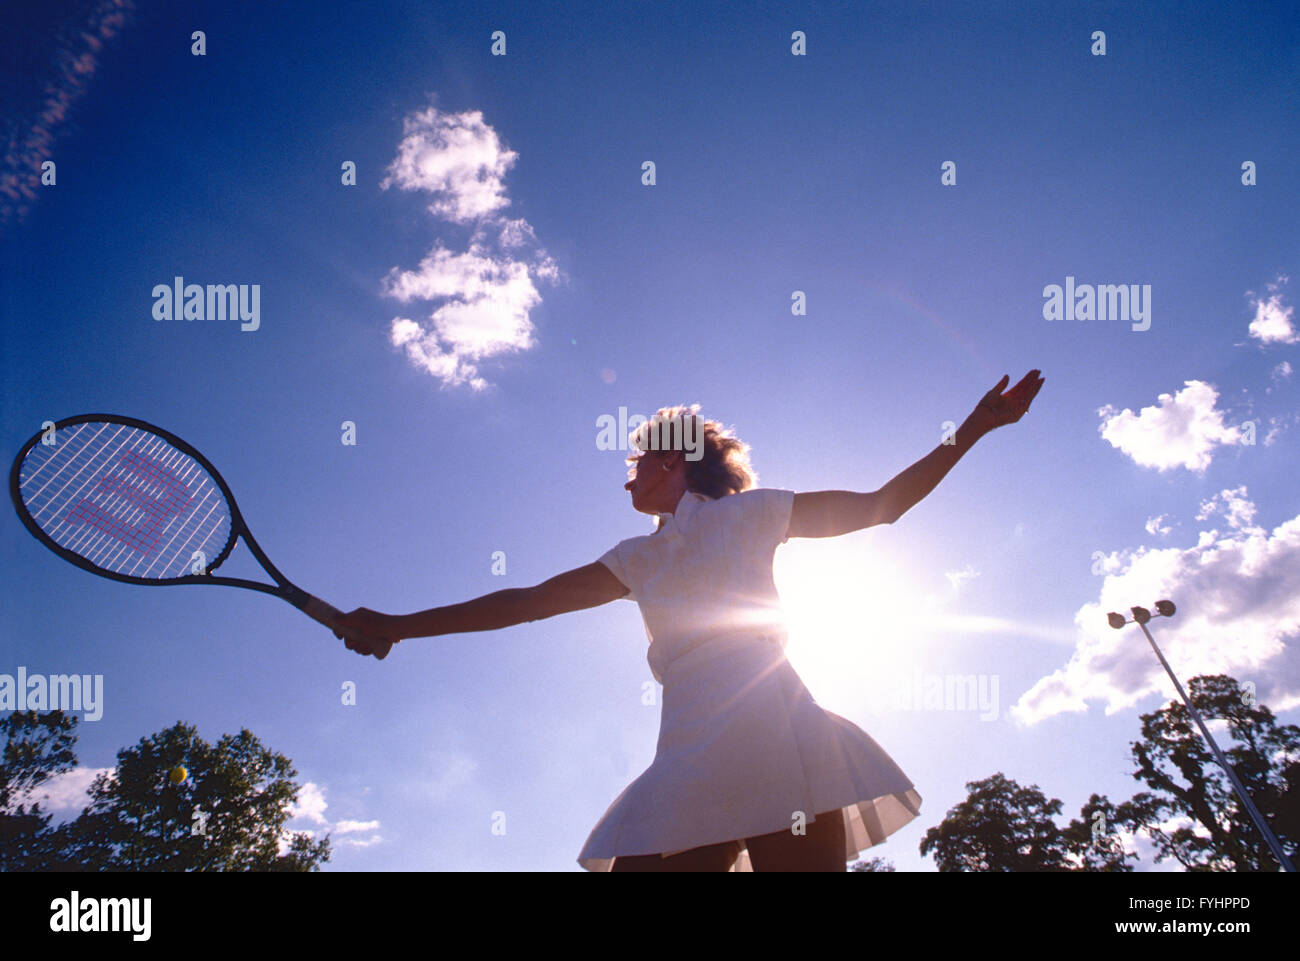 Female tennis player hitting the ball with a racket - Stock Image